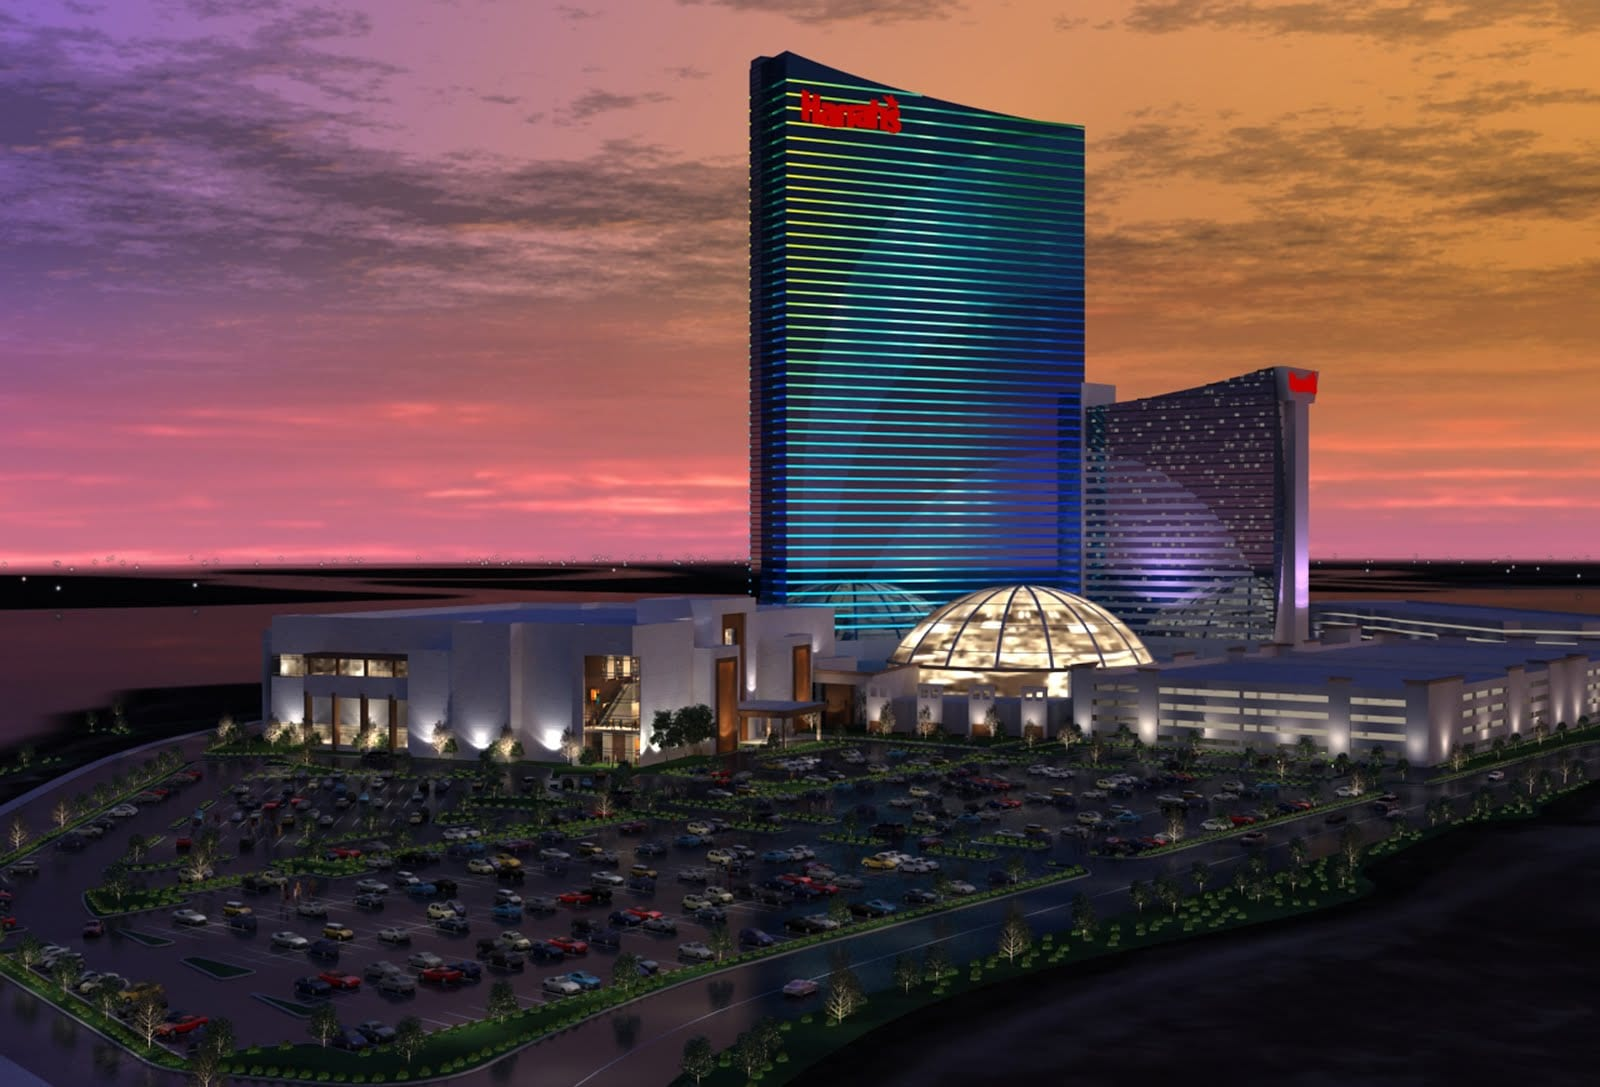 NJ Casino Trips - Harrah's Resort - LI Casino Transportation